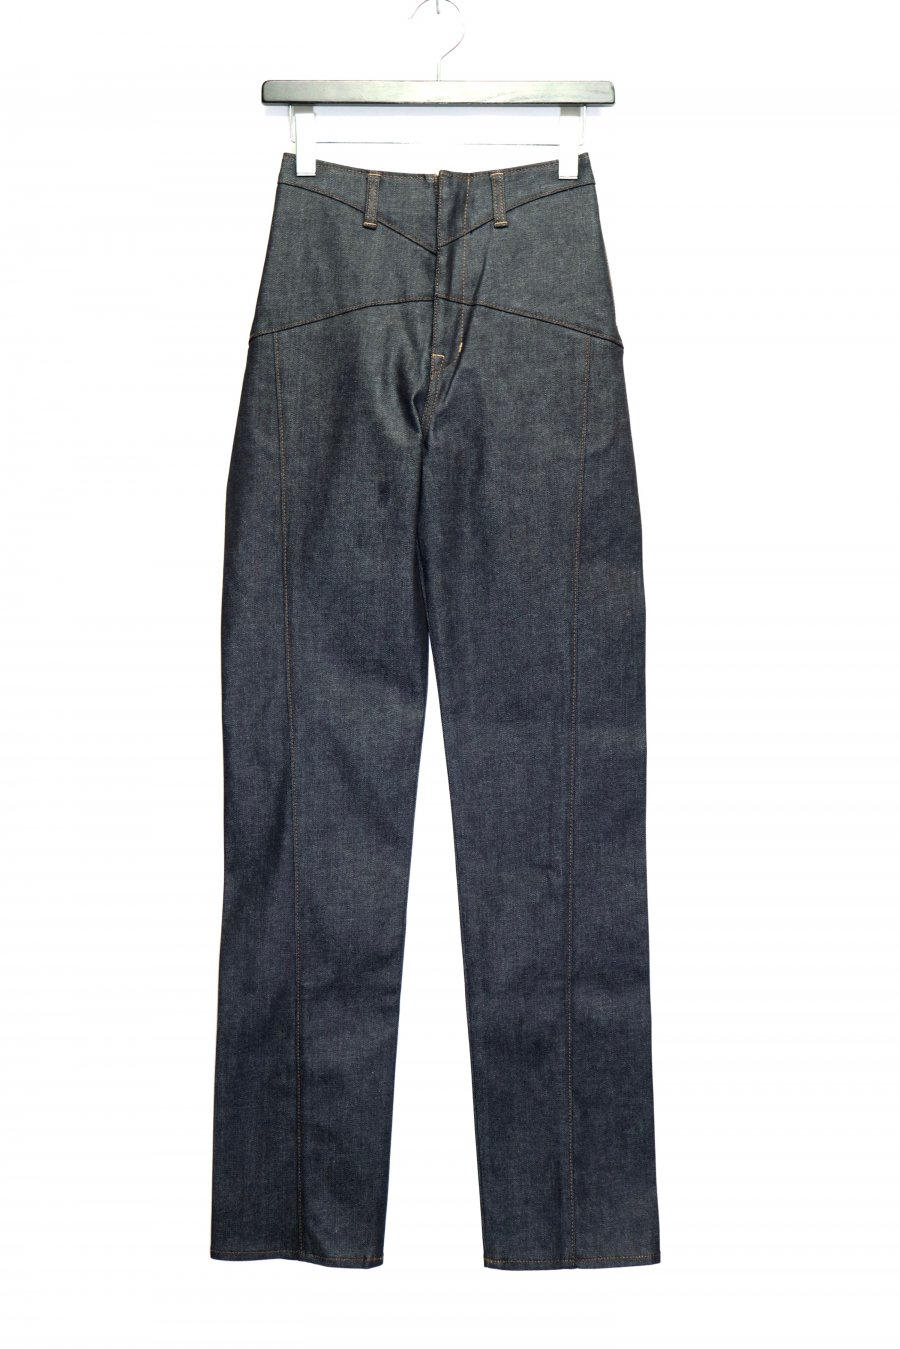 FETICO  12oz Highrise Coated Jeans<img class='new_mark_img2' src='https://img.shop-pro.jp/img/new/icons15.gif' style='border:none;display:inline;margin:0px;padding:0px;width:auto;' />